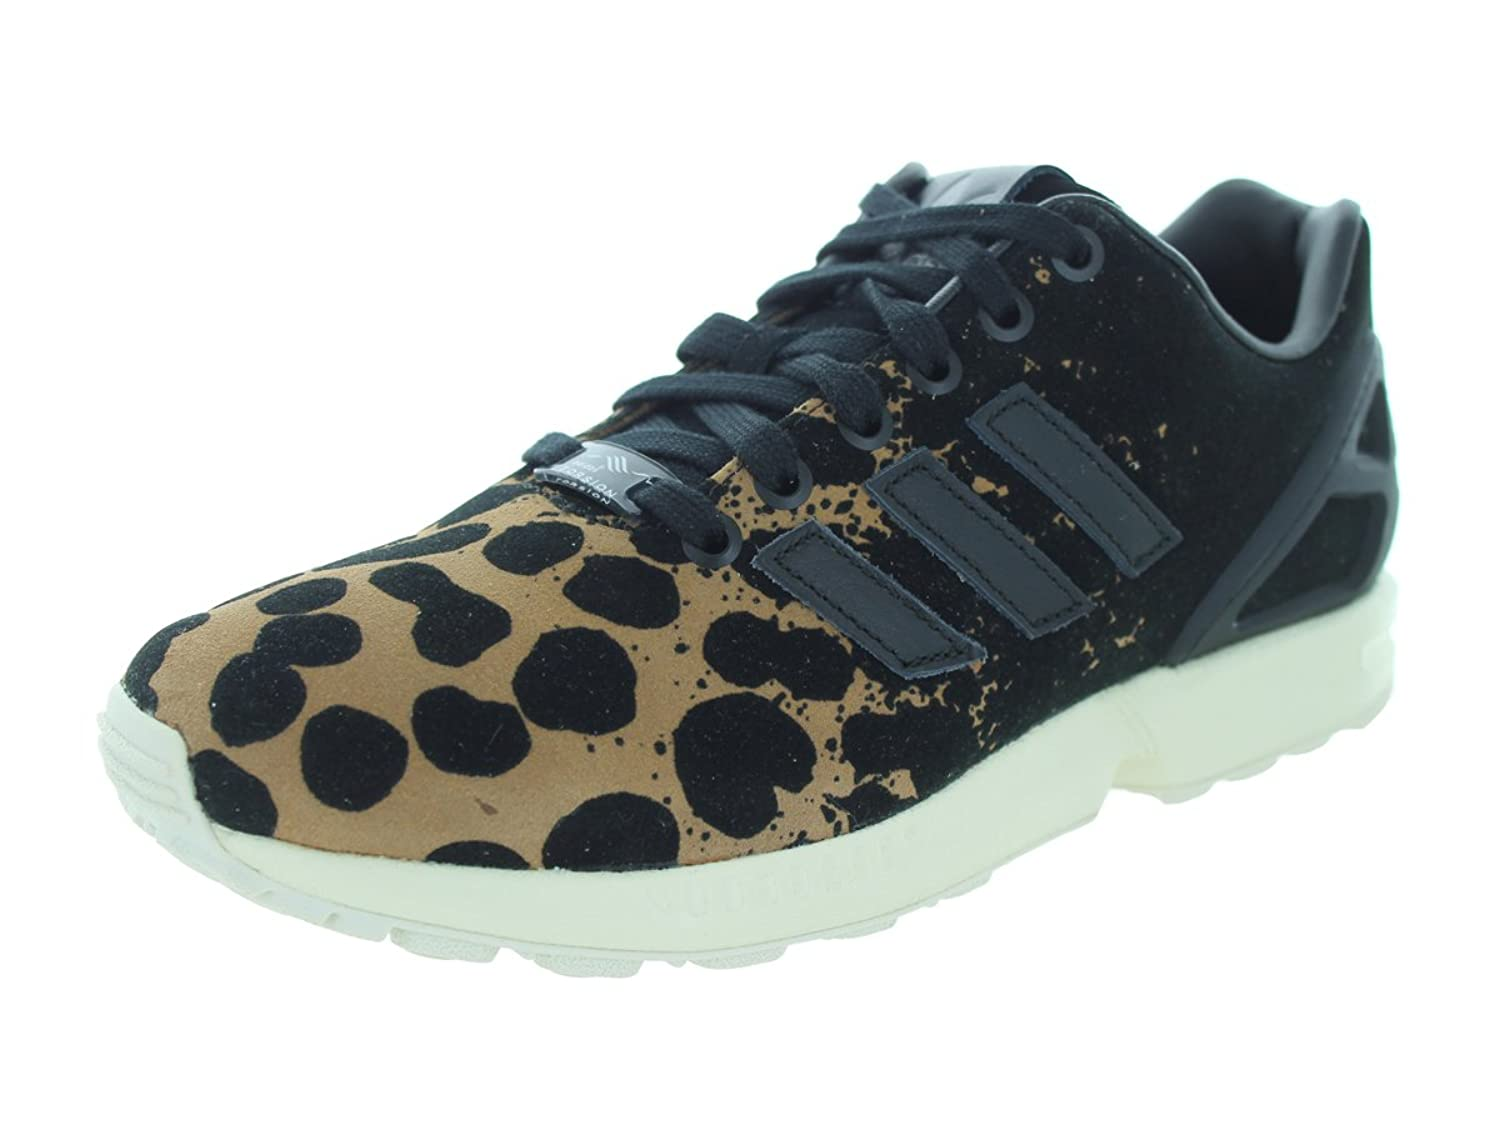 new concept 9e79e 35ba6 ... promo code for amazon adidas womens zx flux black b35312 size 8 shoes  76c18 27a27